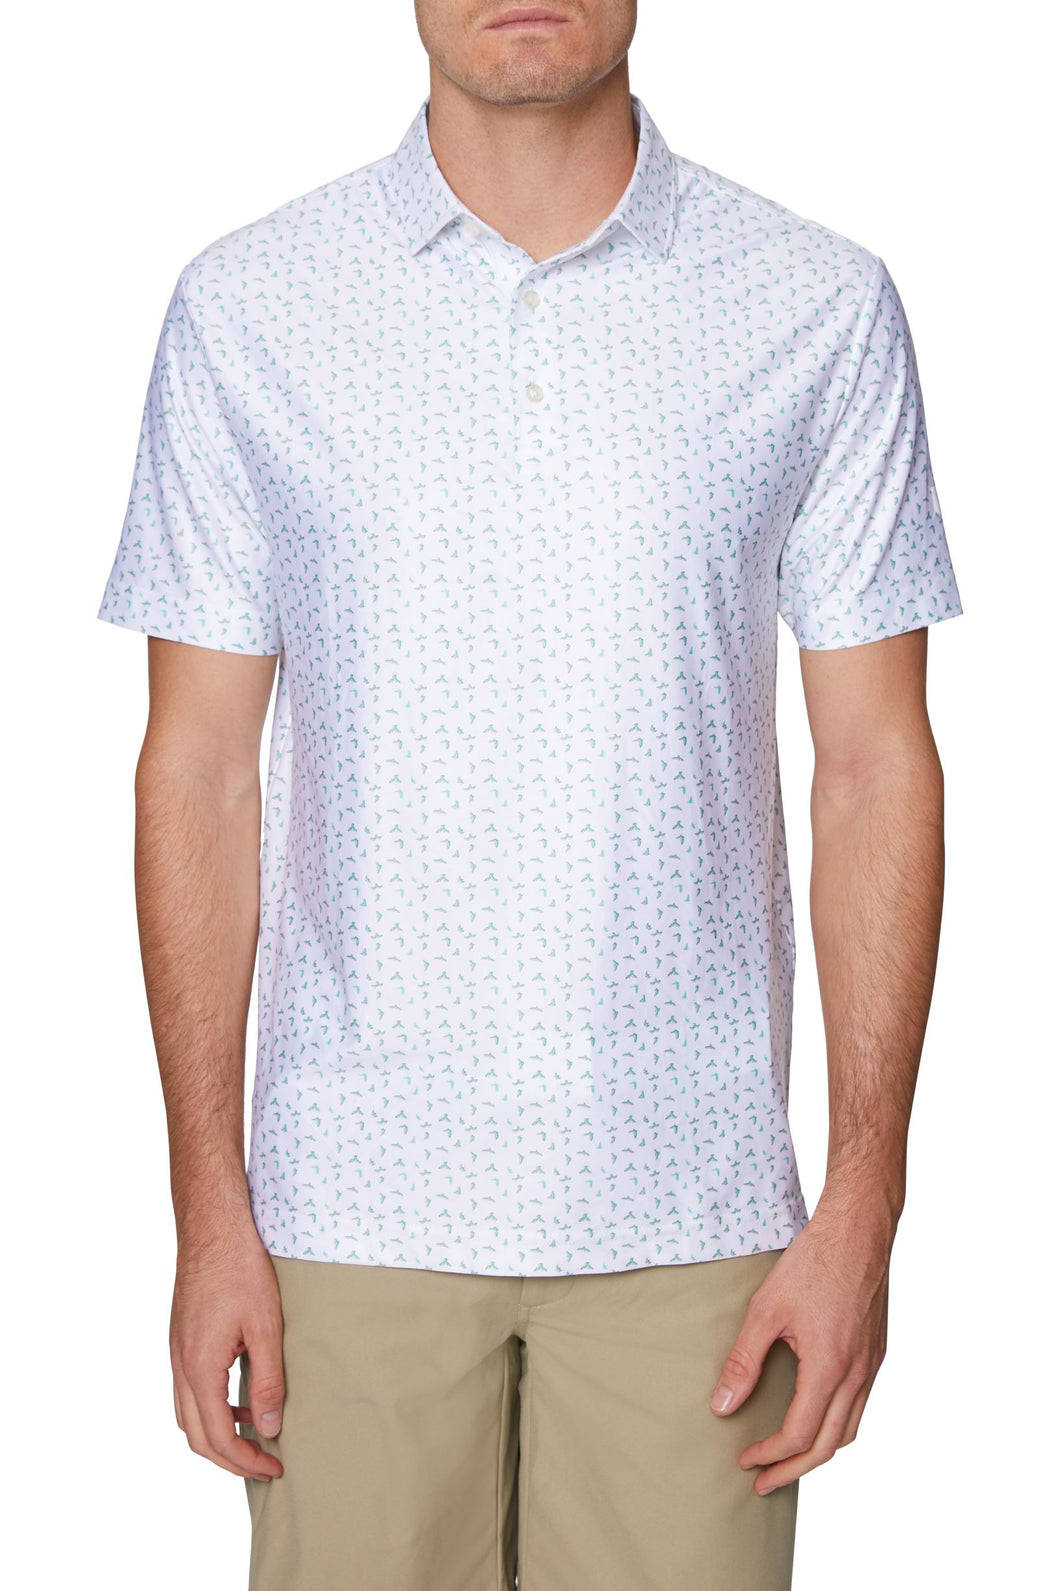 Men's 3 Button Birdie Print Polo